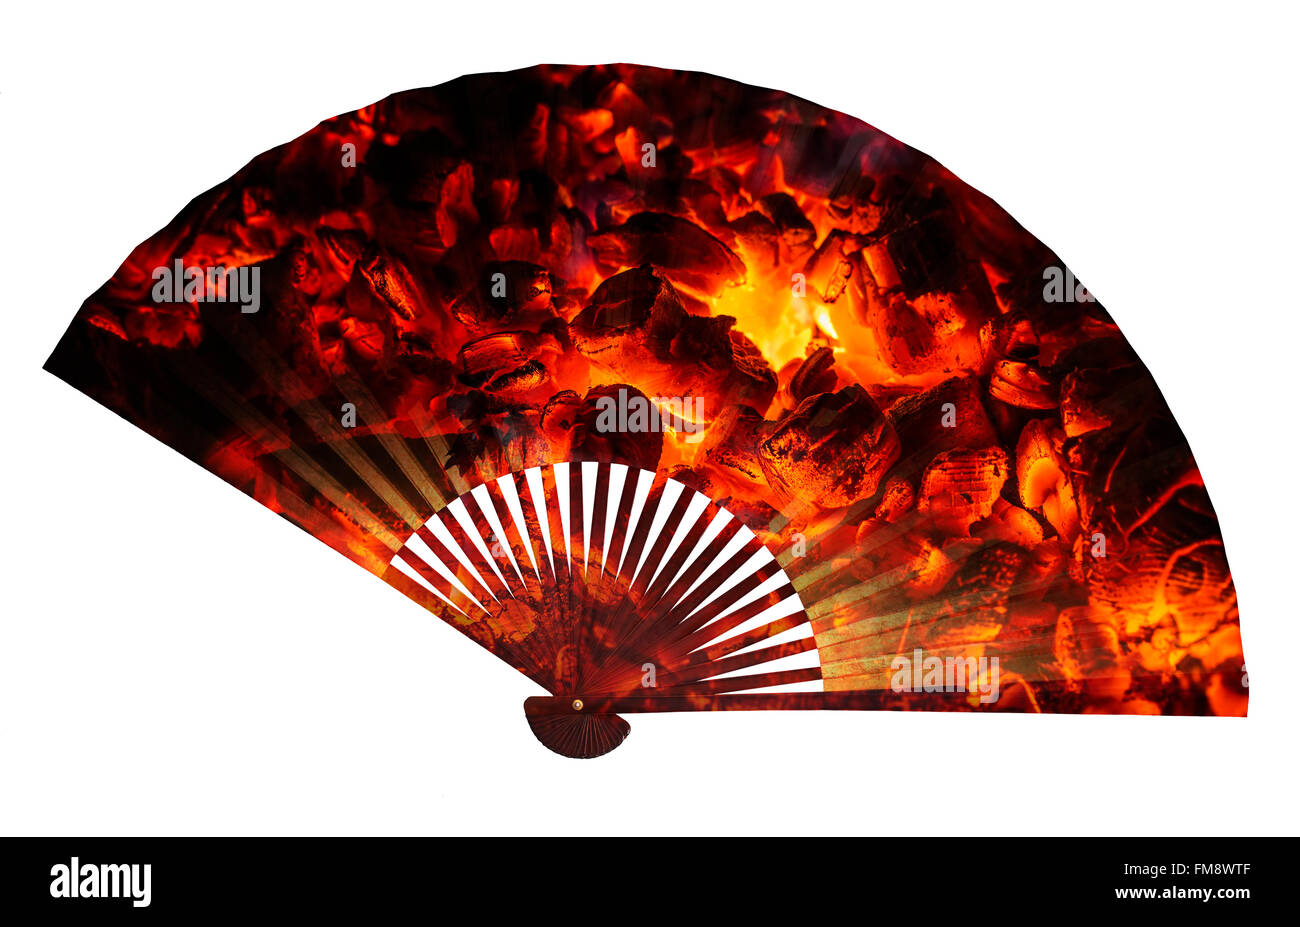 Asian fan isolated, double exposure with hot coal. - Stock Image